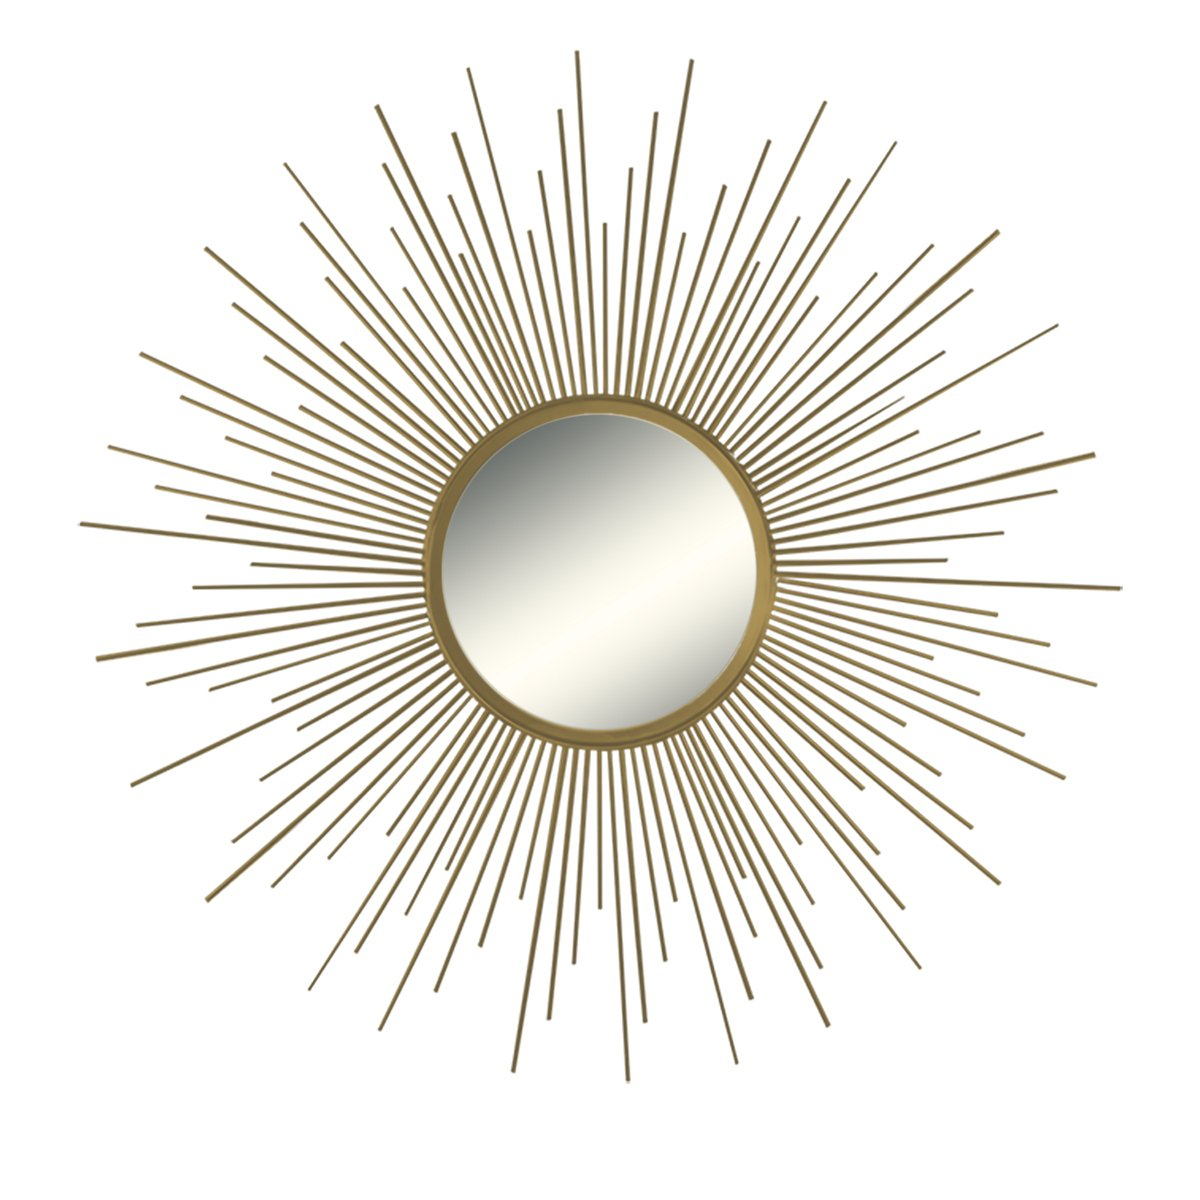 Buy Decorative Wall Mirror Round Shape Kentwood Collection for Kentwood Round Wall Mirrors (Image 3 of 30)